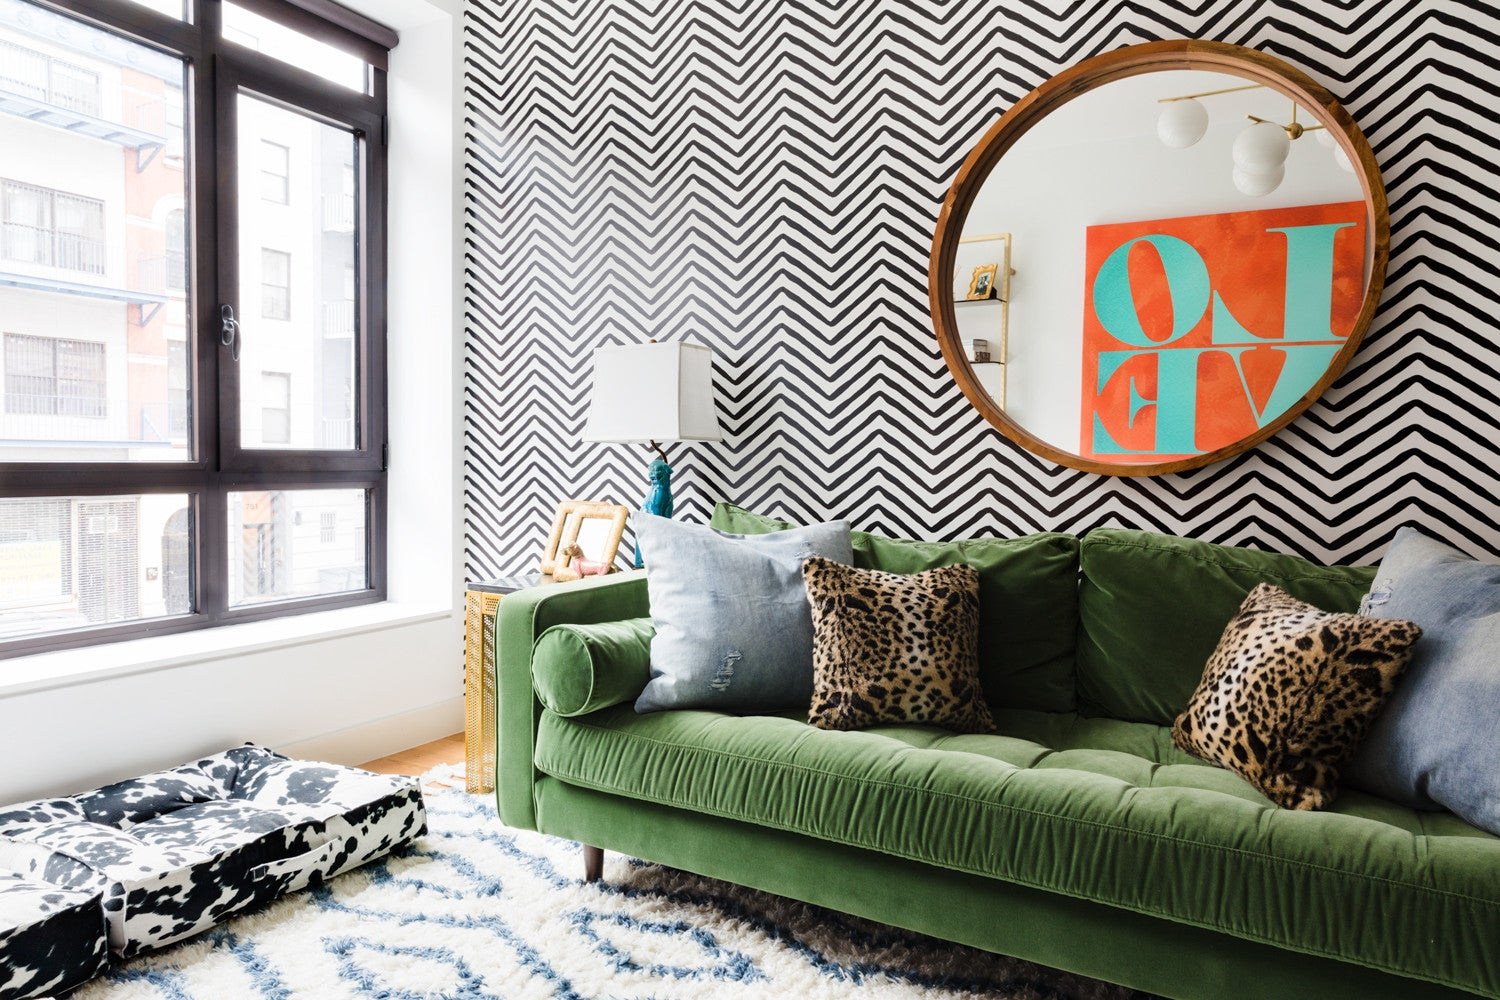 This Celebrity Chef's Apartment Is as Bold as His Personality